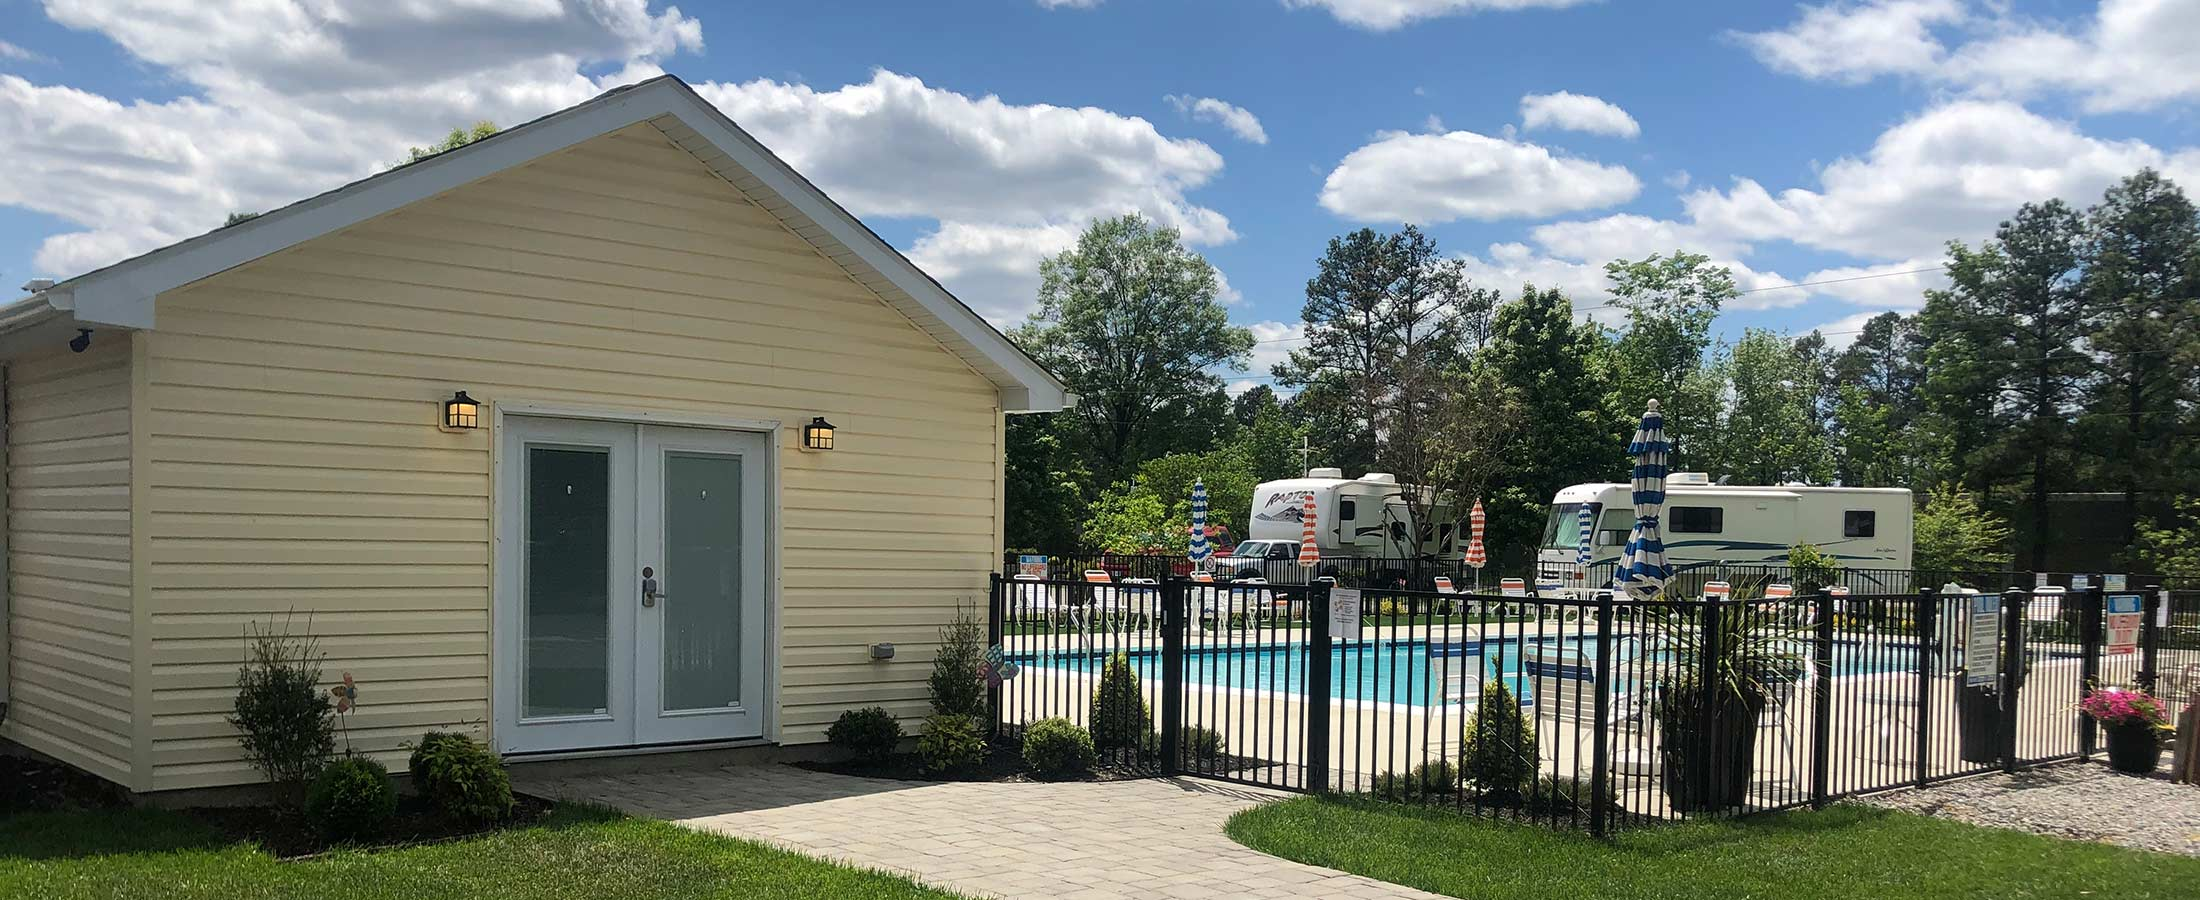 yellow office building by pool with rvs